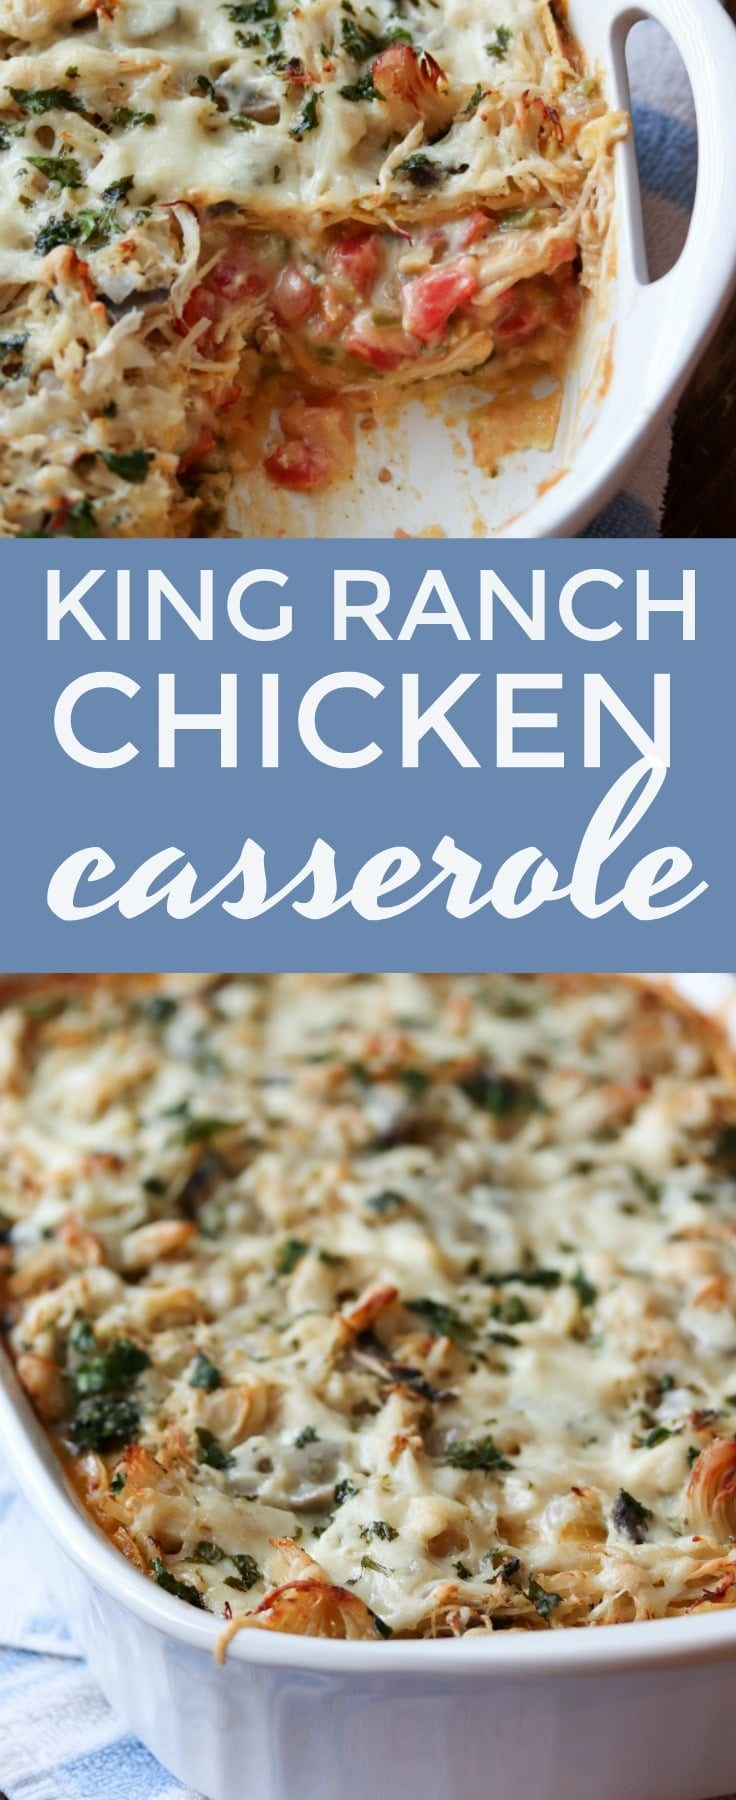 King Ranch Chicken Casserole. This creamy, boldly flavored #chicken #casserole feeds a crowd! A true southern classic that will WOW everyone. #southerncooking #dinner